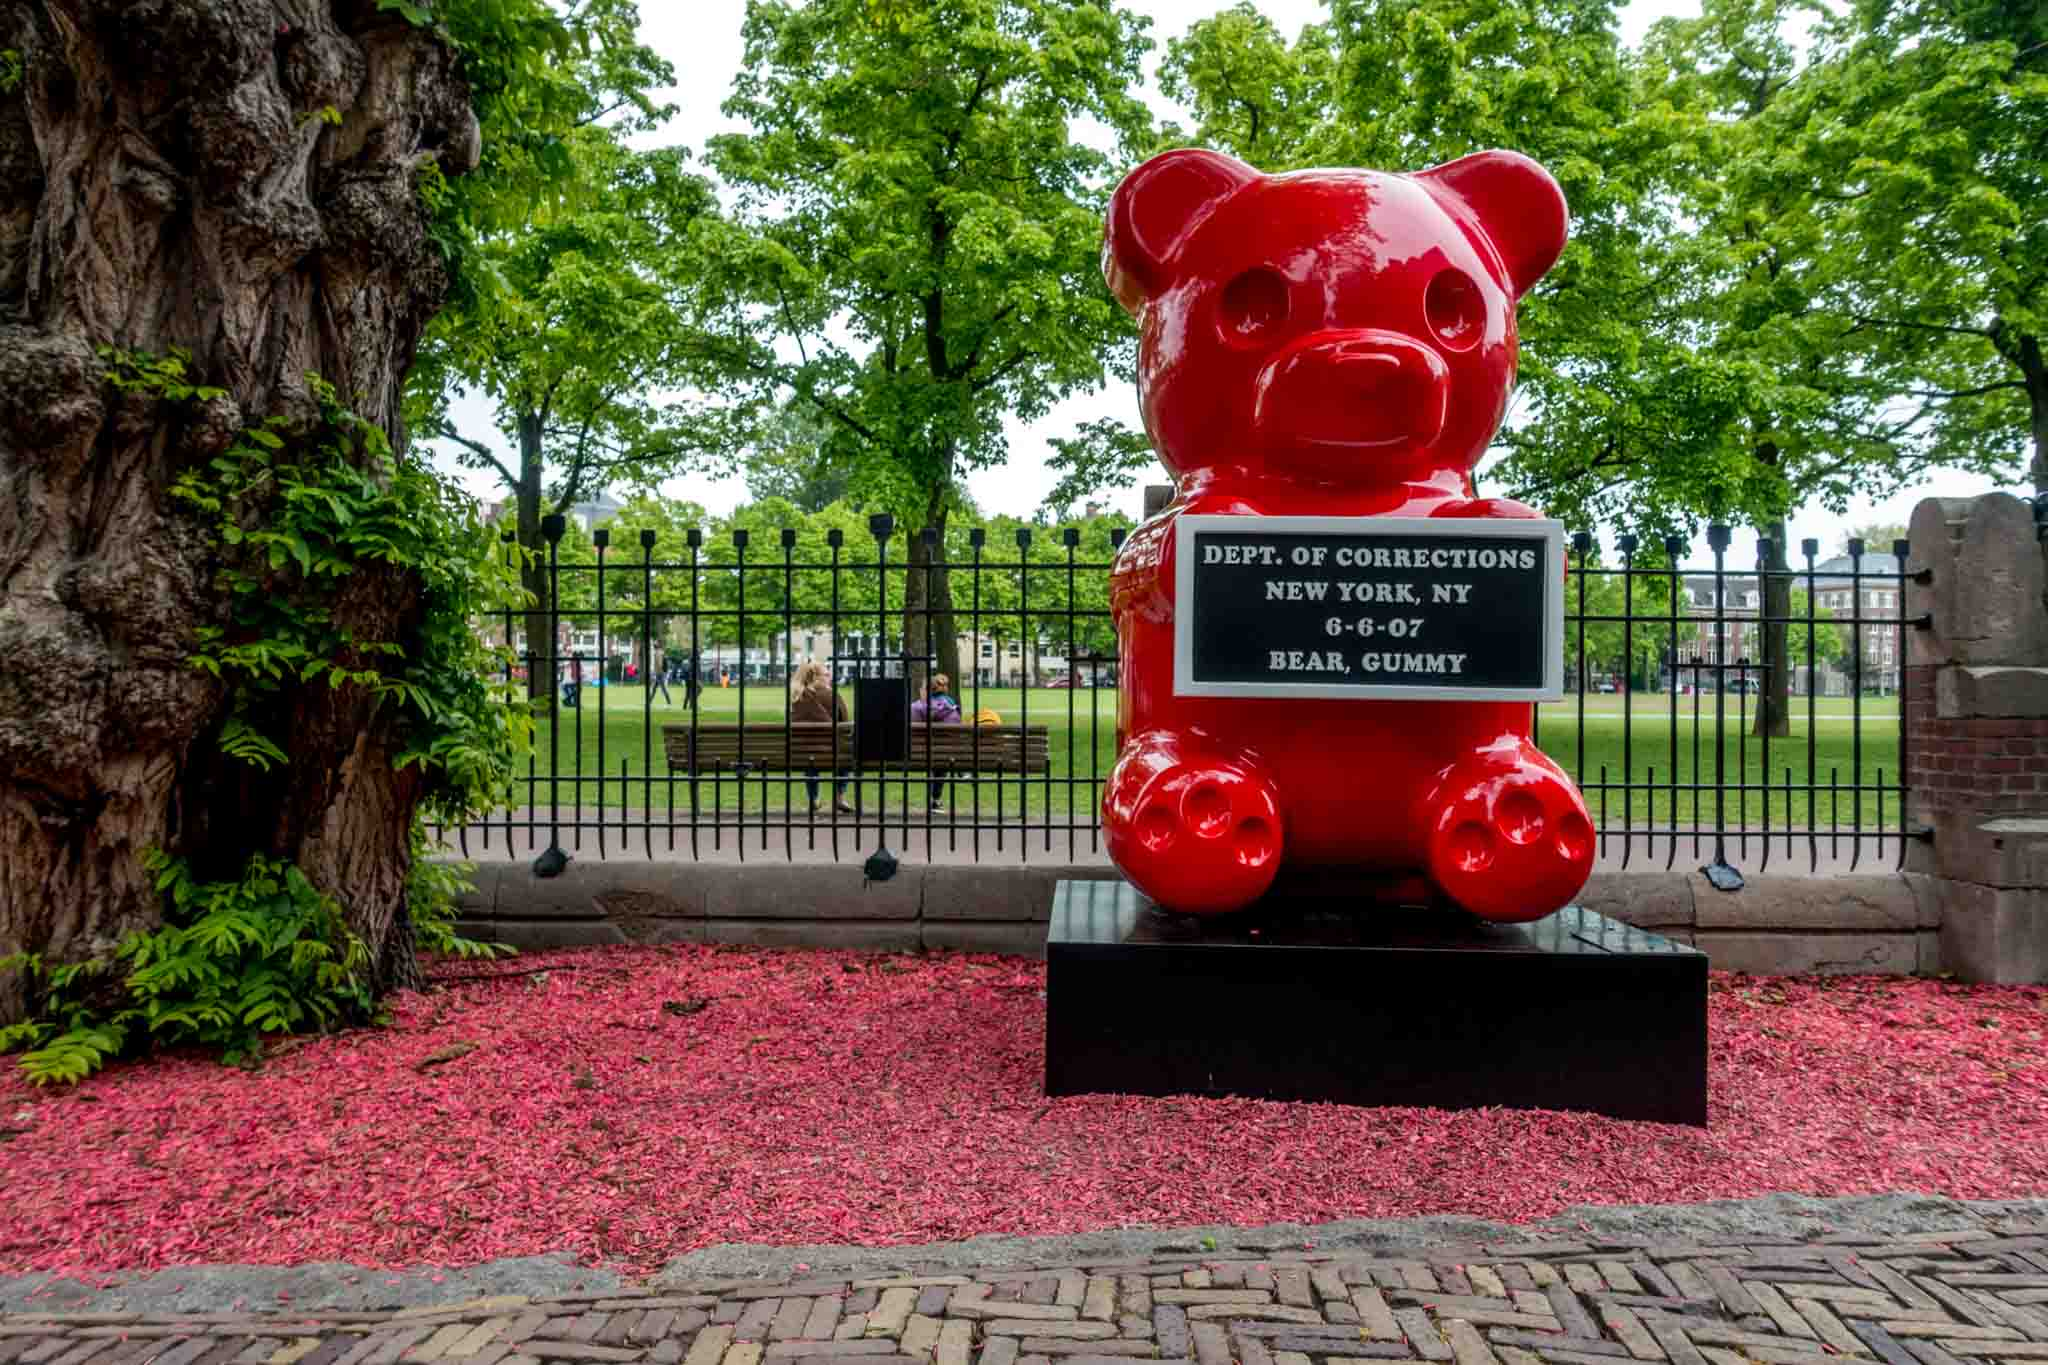 Red gummy bear statue holding a mug shot plaque in the garden of the MOCO Museum in Amsterdam Netherlands.